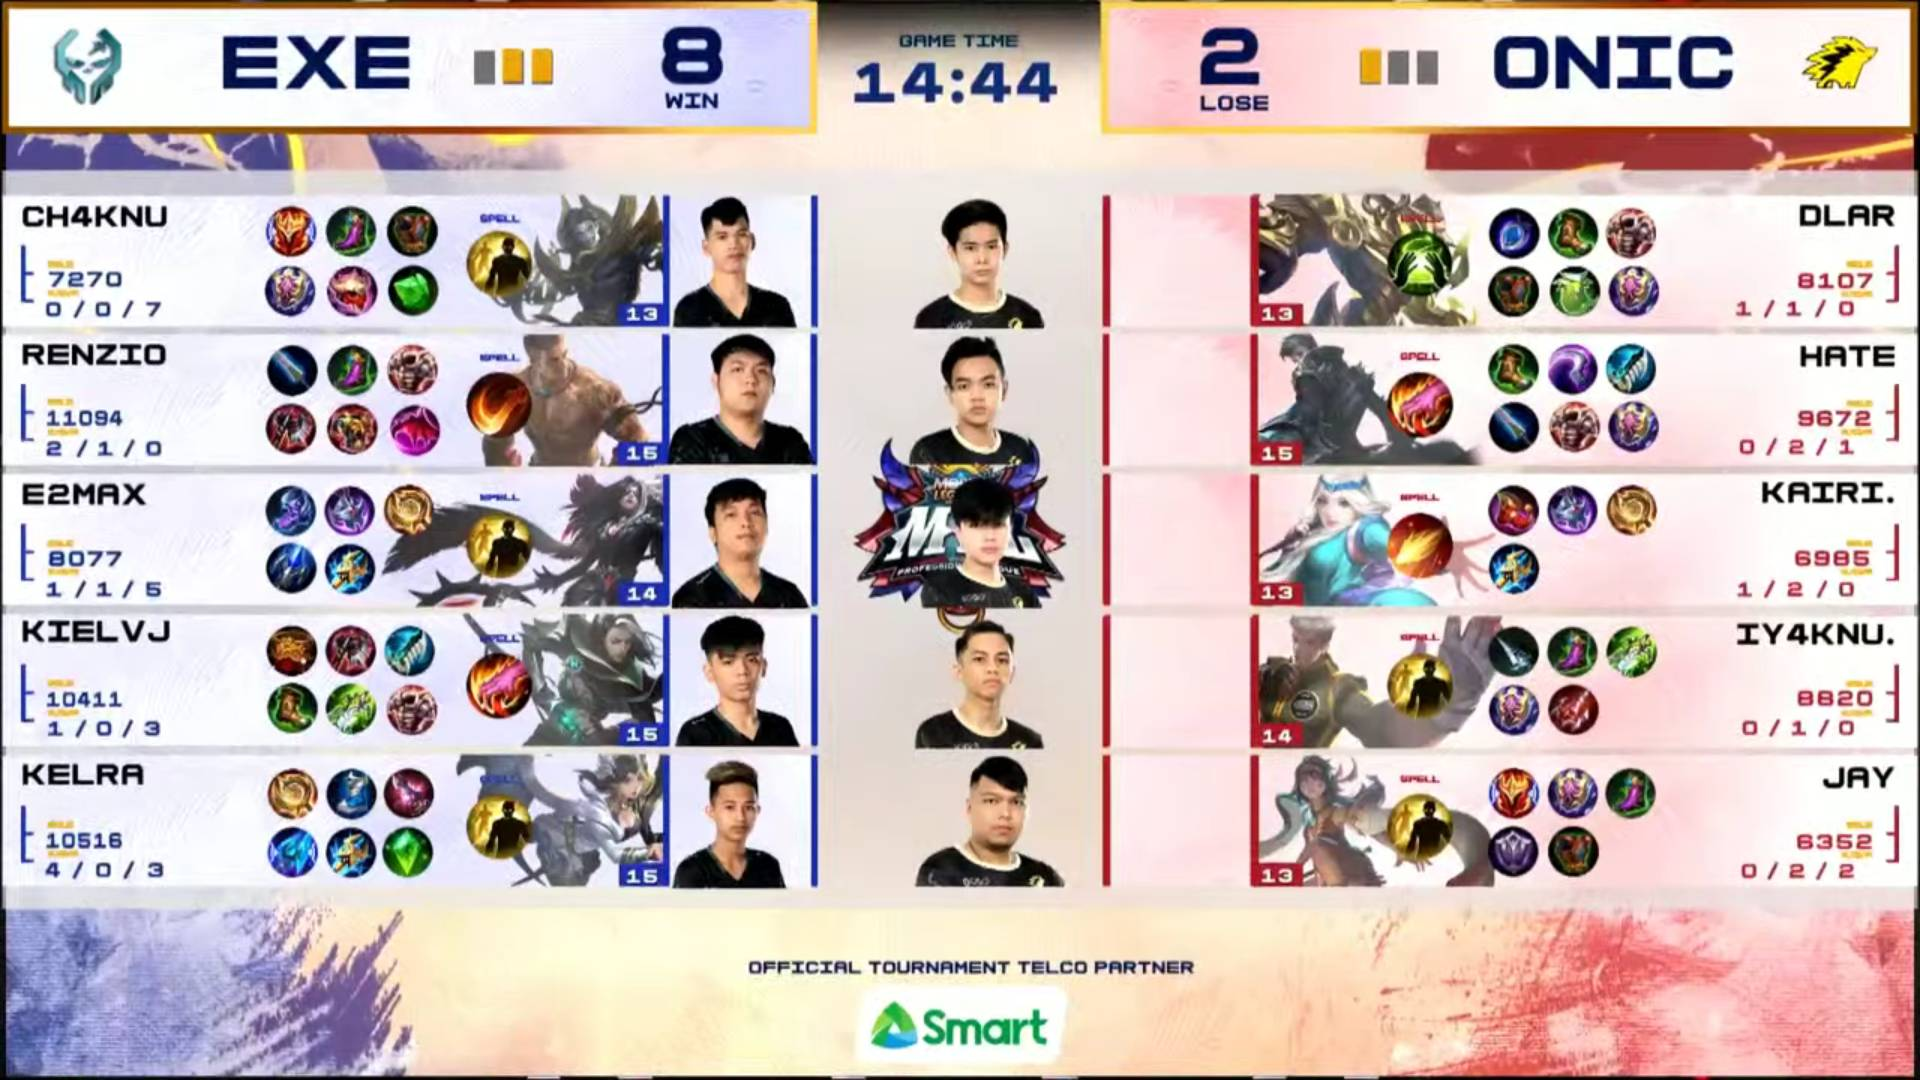 MPL-PH-Season-7-Execration-def-Onic-Game-3 Execration eliminates Hate, ONIC PH in MPL PH playoffs ESports Mobile Legends MPL-PH News  - philippine sports news